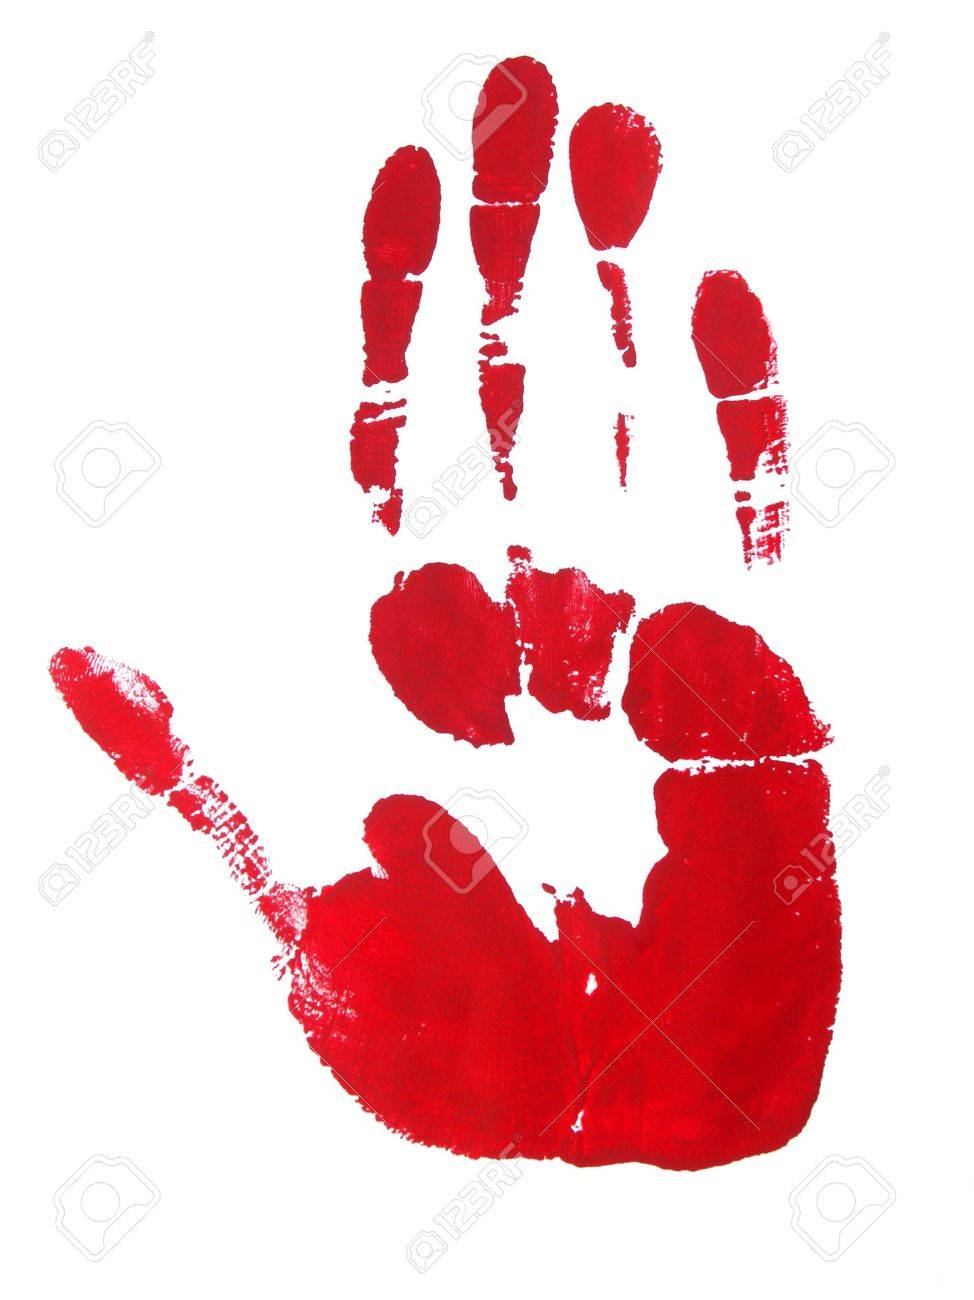 Image of a print of a red hand on a white background. Stock Photo - 2517841